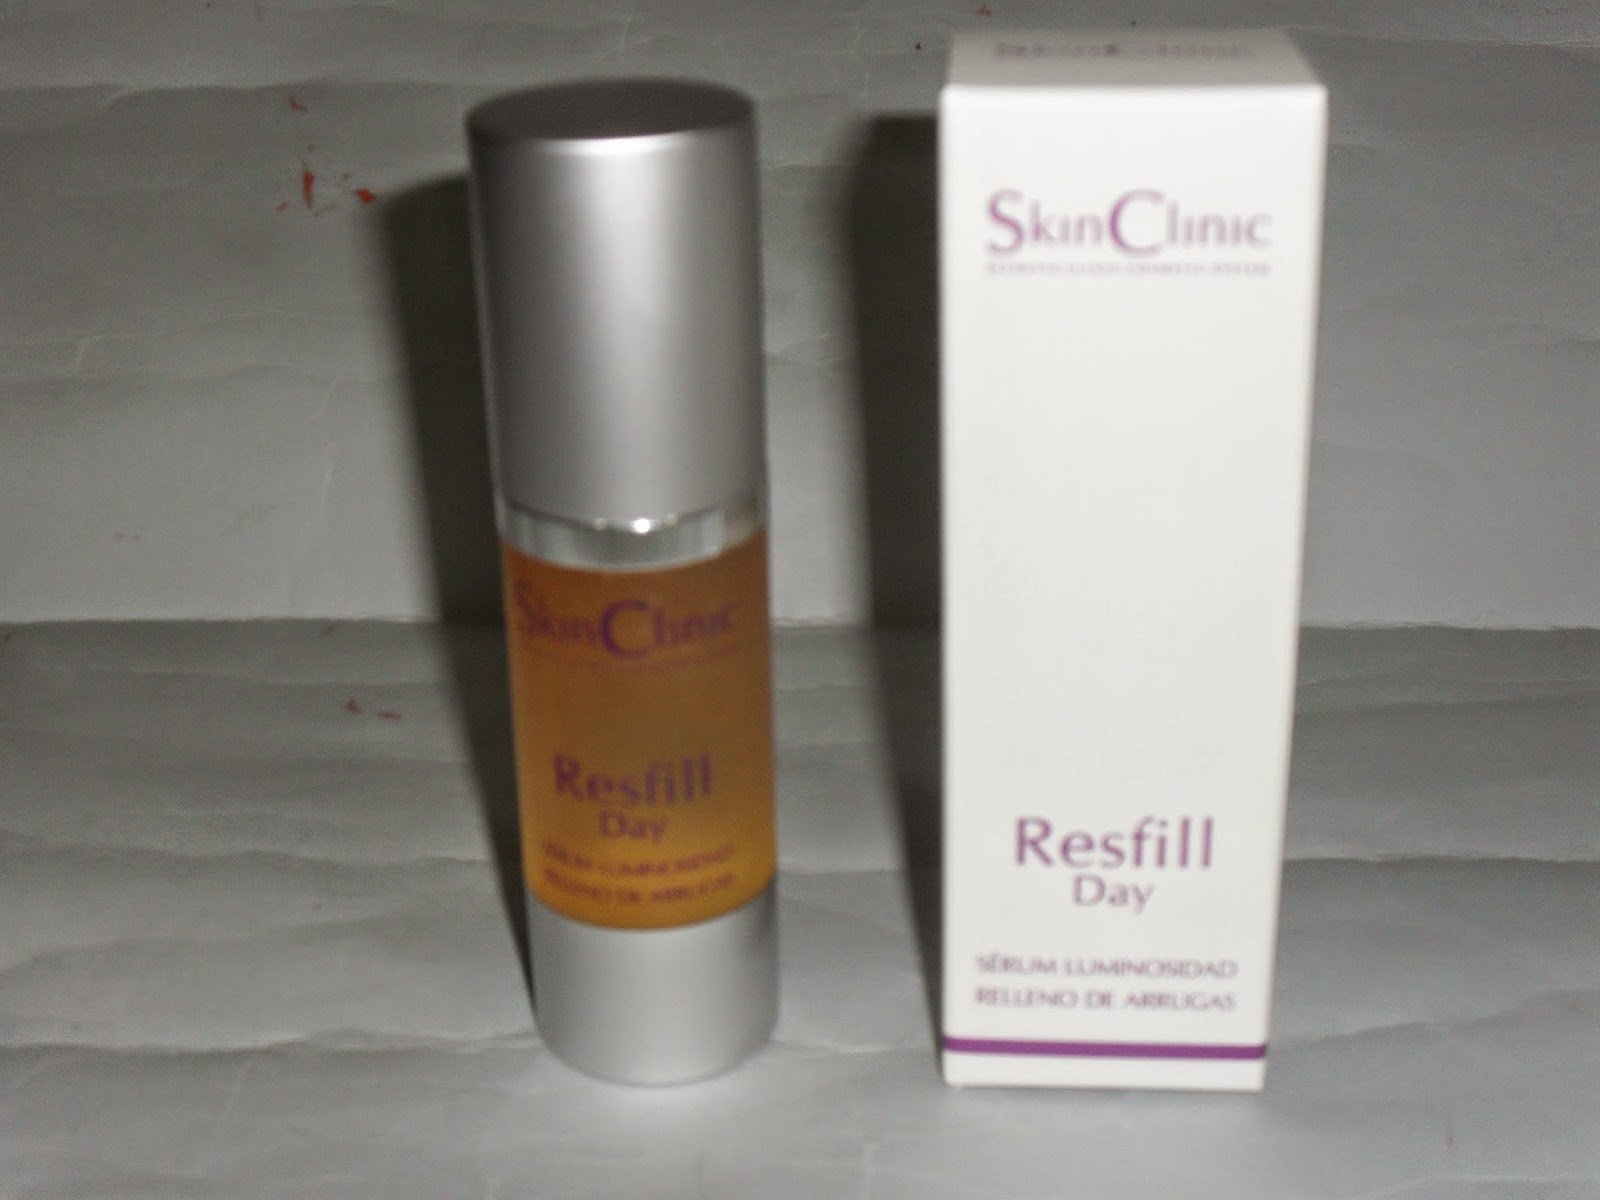 Imagen Resfill Day SkinClinic